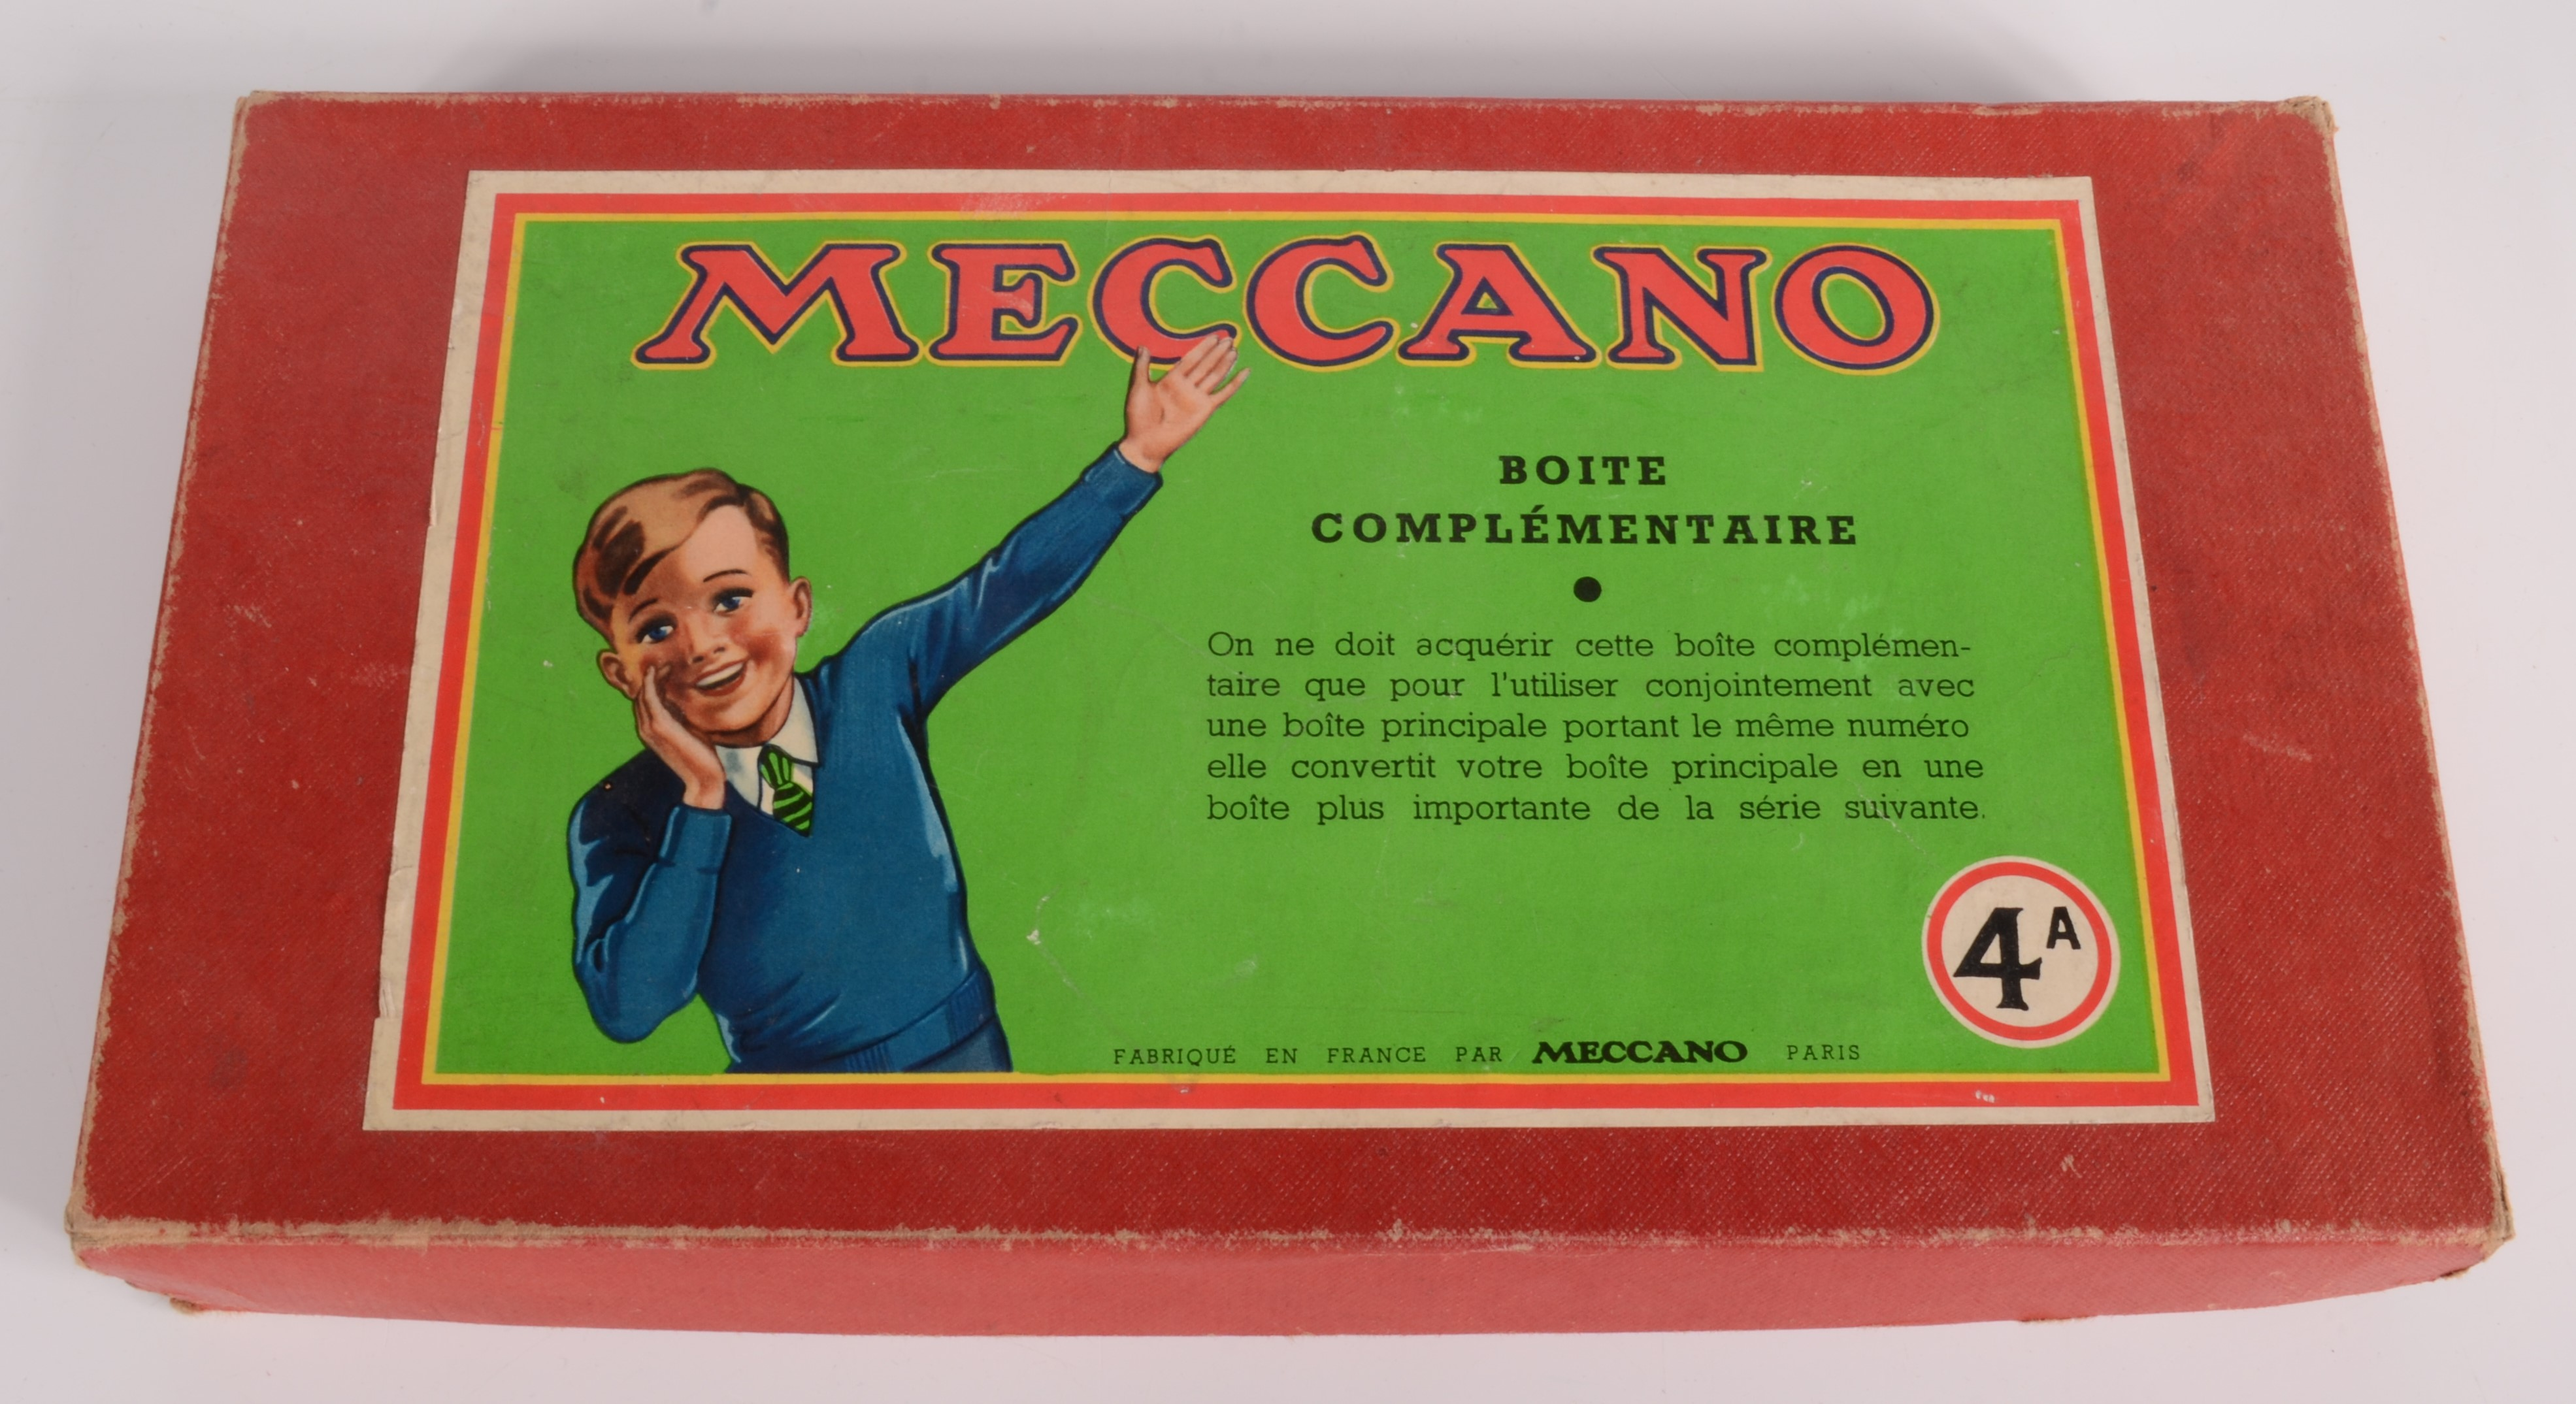 Lot 12 - A Meccano set 4A, possibly 1920s, box inscribed 'Boite Complementaire'.